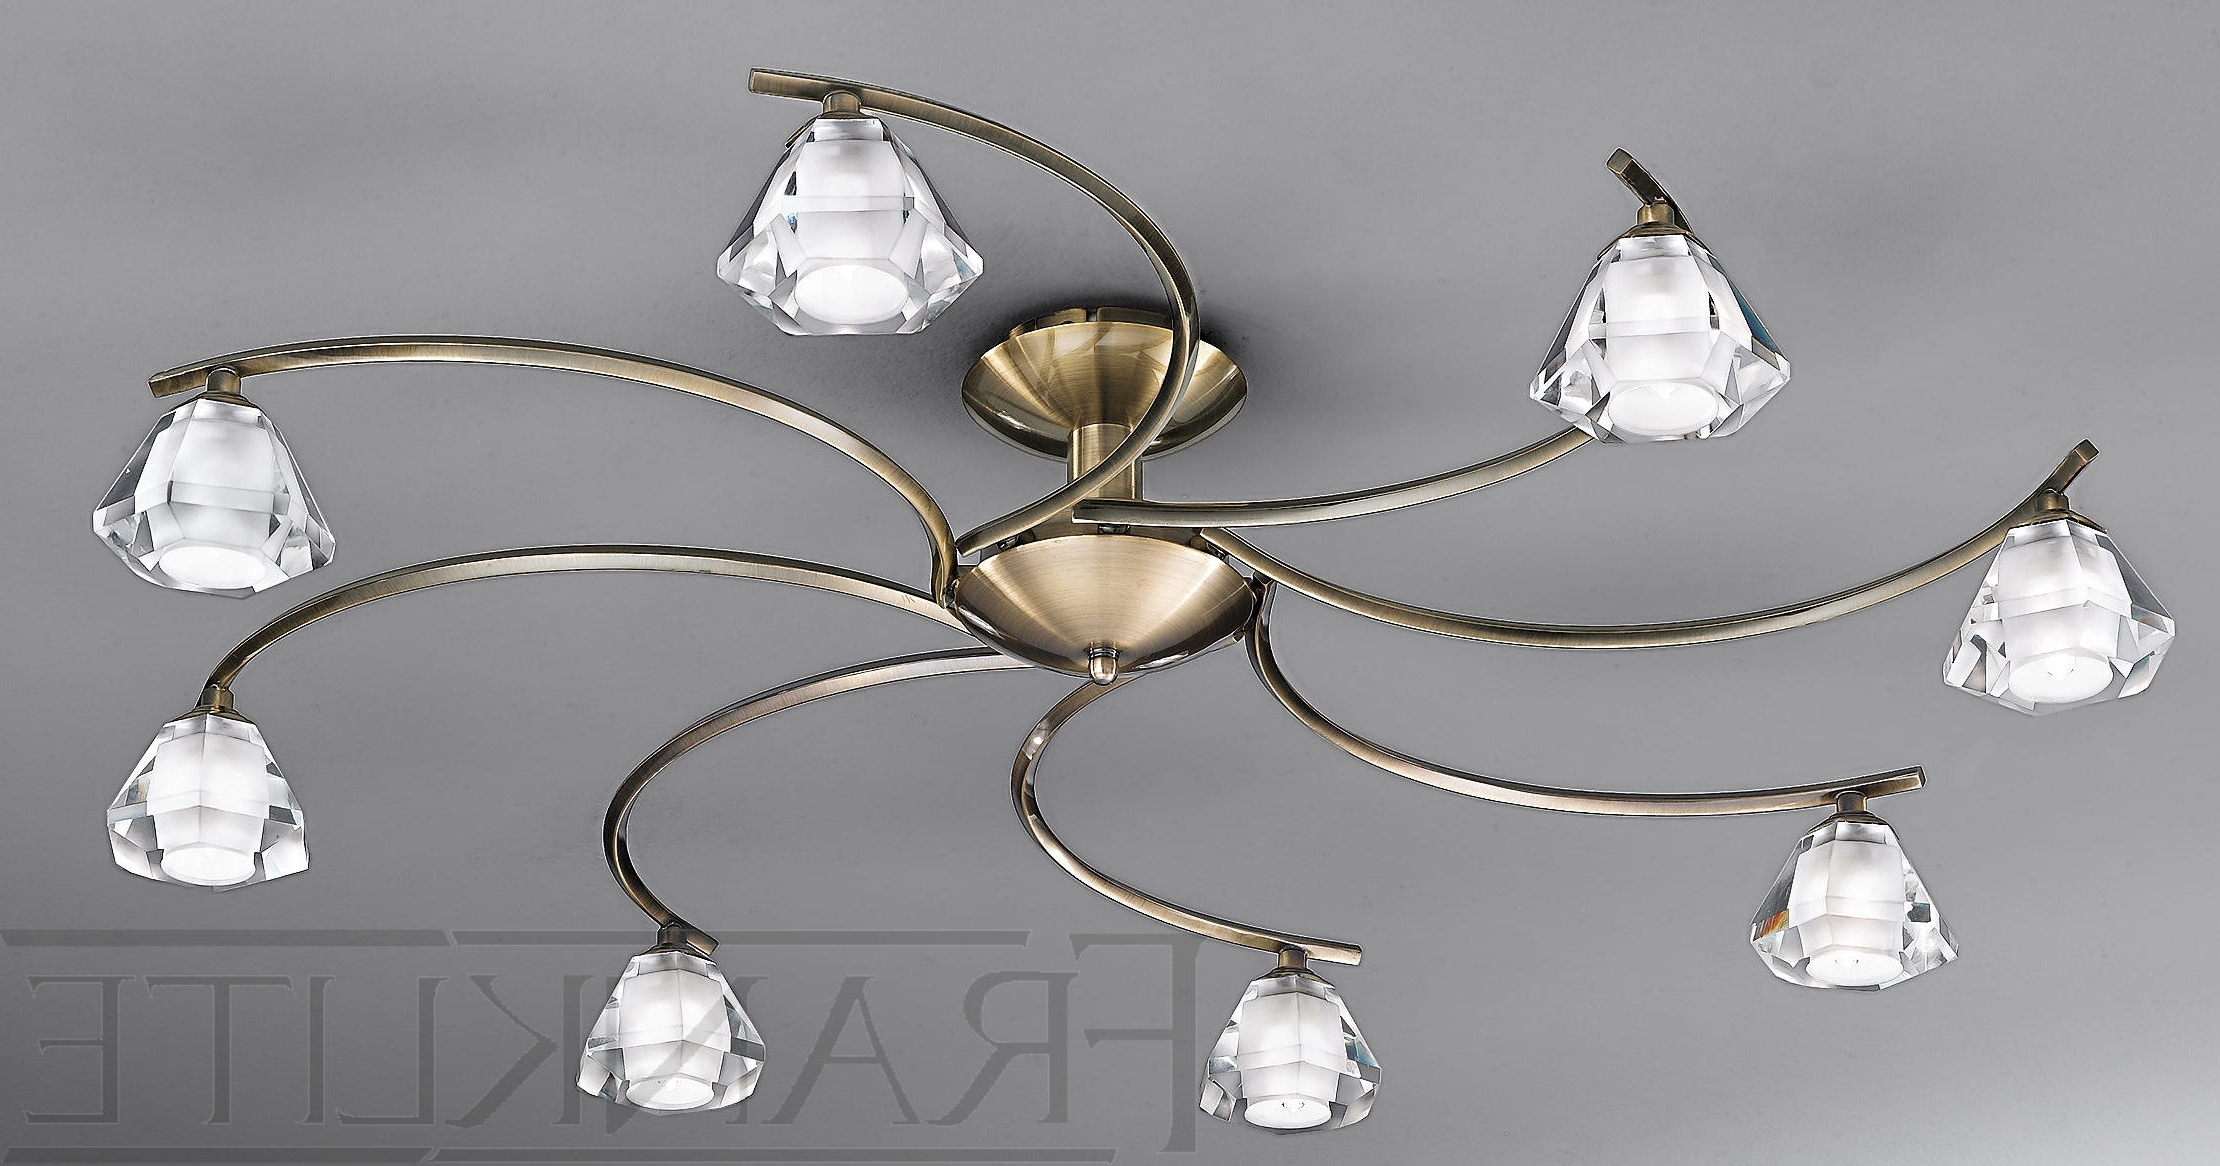 Most Popular Low Ceiling Chandeliers Within Lighting For Low Ceilings, Dramatic Lighting For Low Ceilings Design (View 14 of 20)